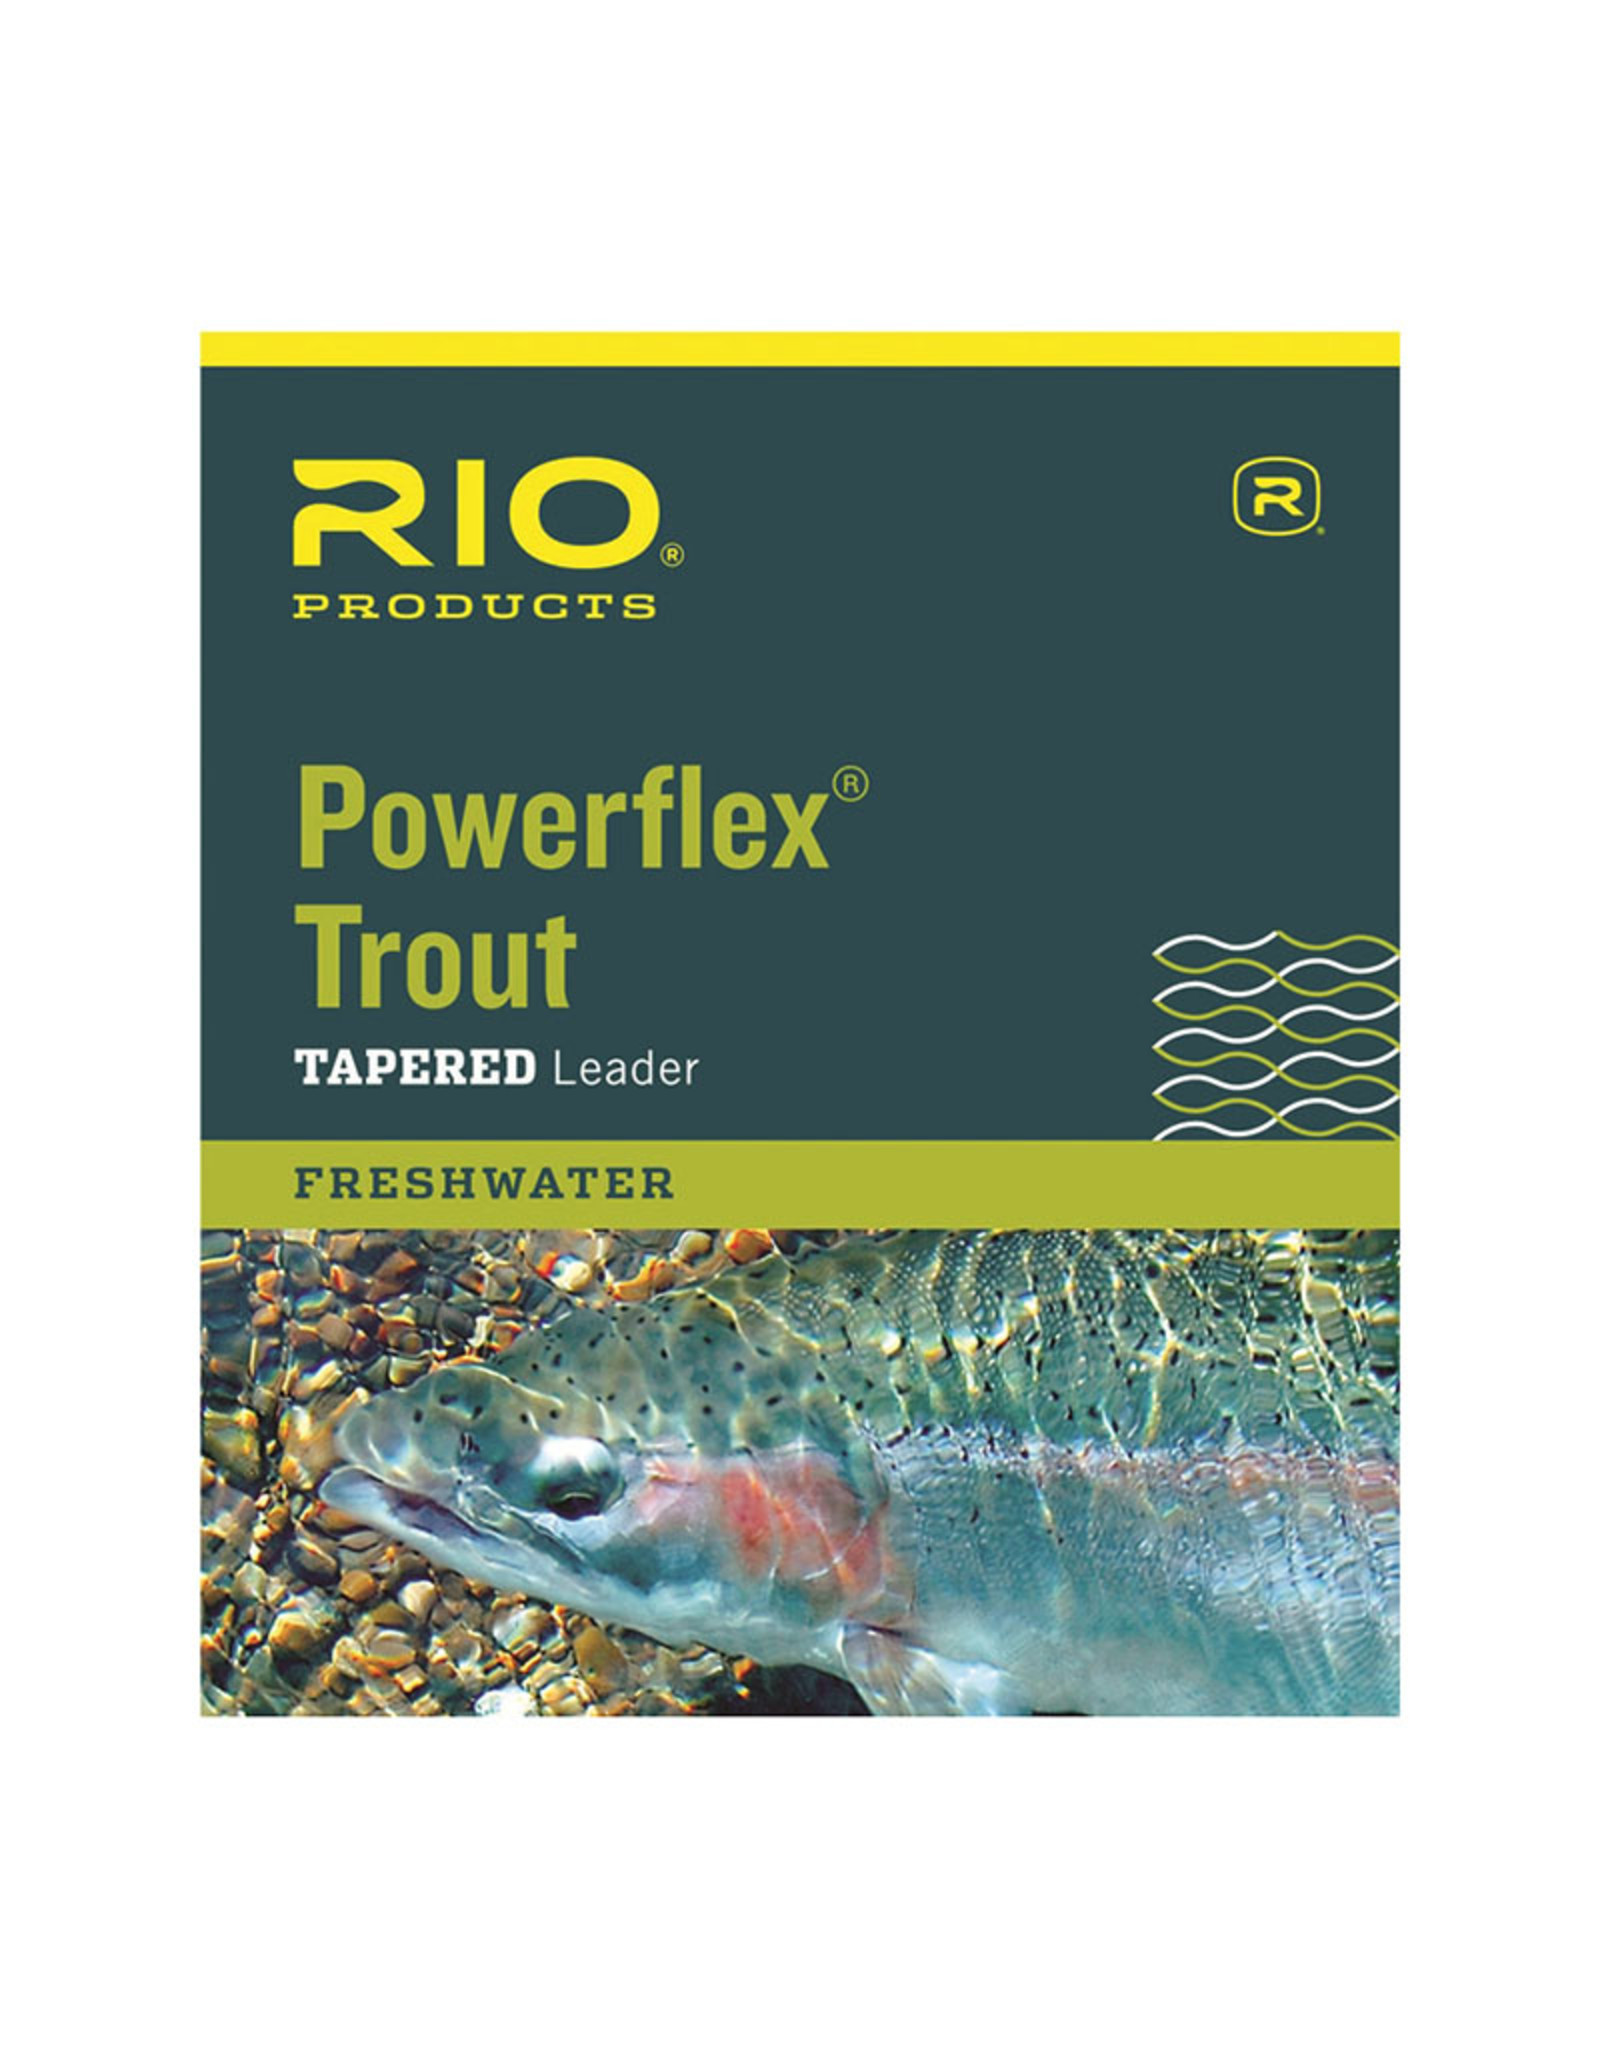 RIO Products Powerflex Trout 12ft Leader